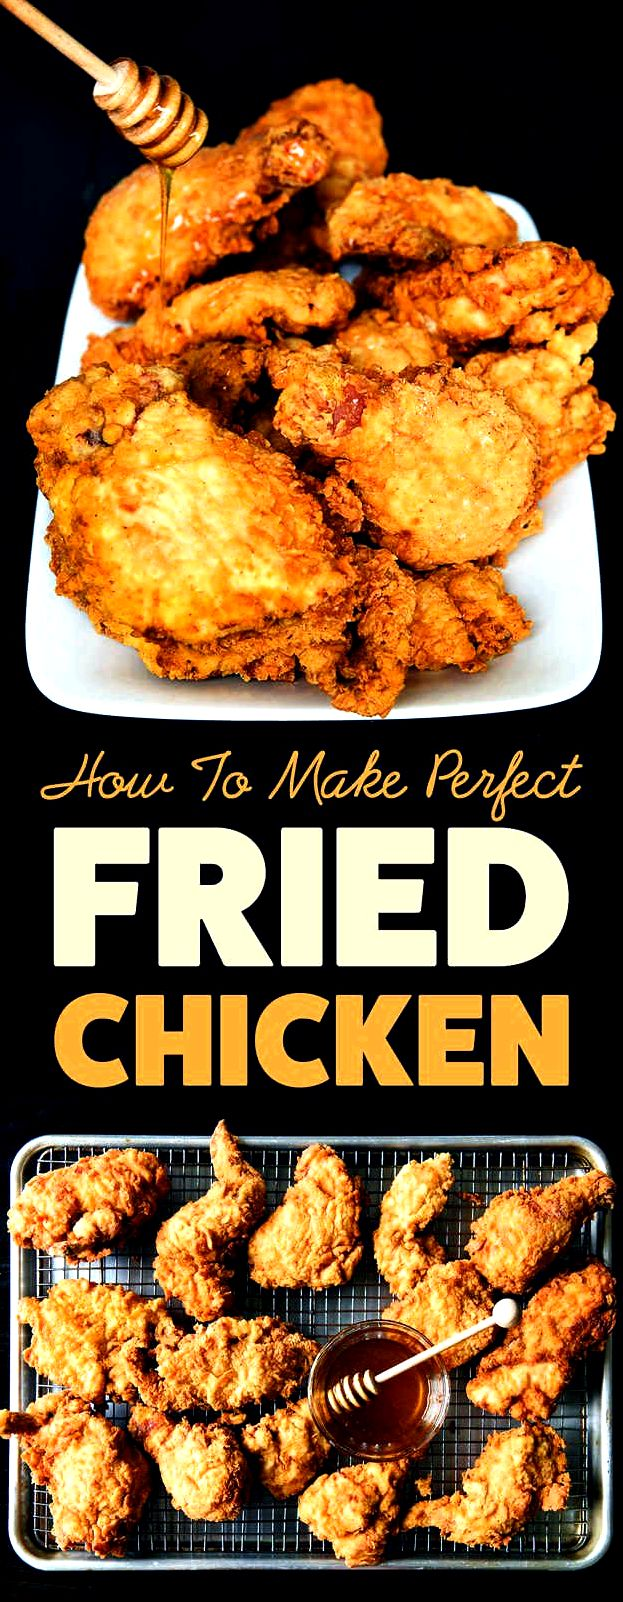 Steps to make fried chicken - nyt cooking when needed                                 Preparation                 Place chicken